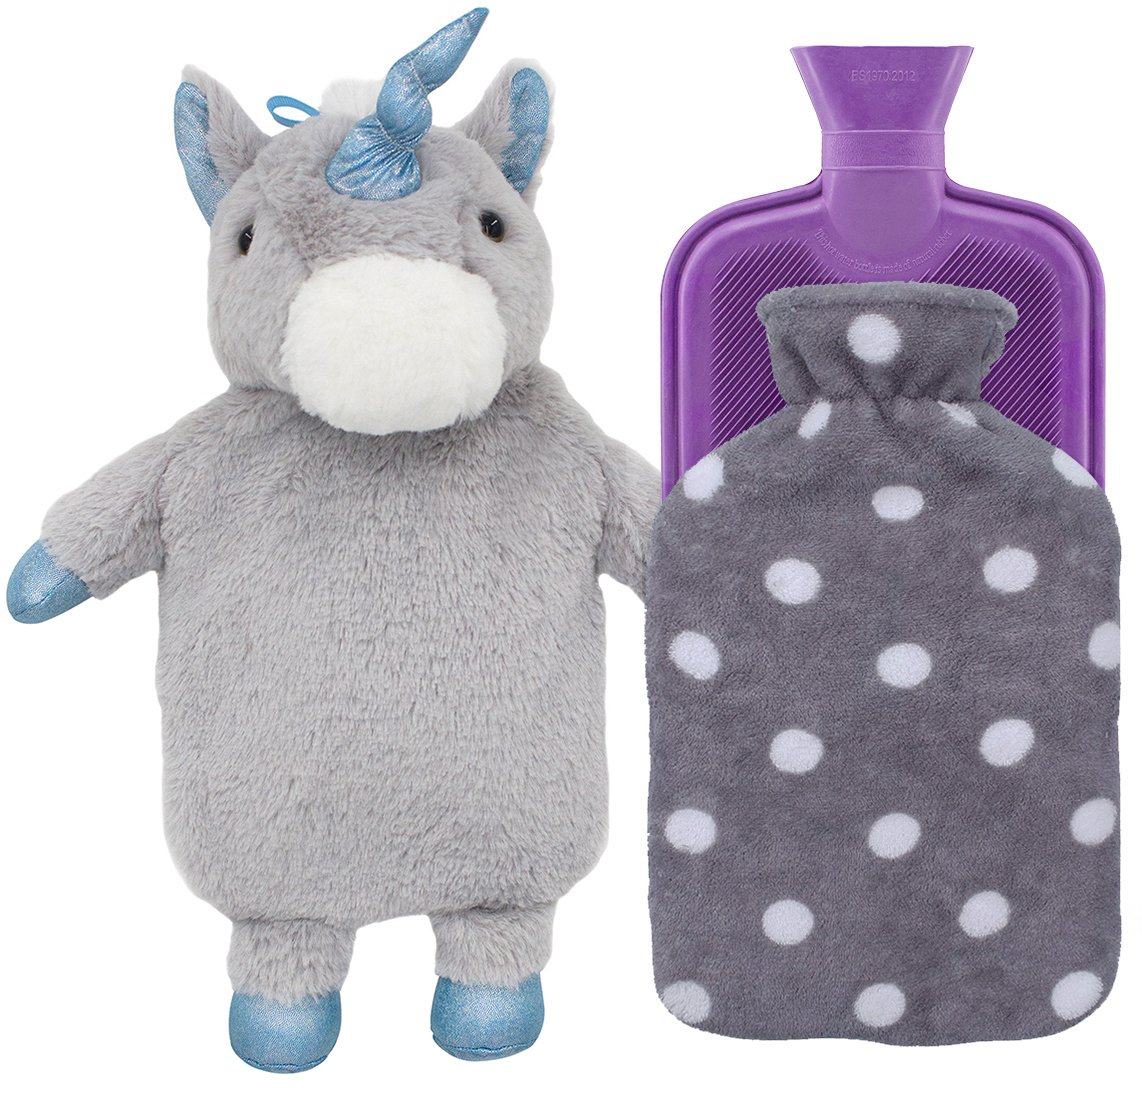 HomeTop Premium Classic Rubber Hot Water Bottle with Cute Unicorn Cover and Soft Fleece Cover (Gray Unicorn + Gray Polka Dot/Purple) by HomeTop